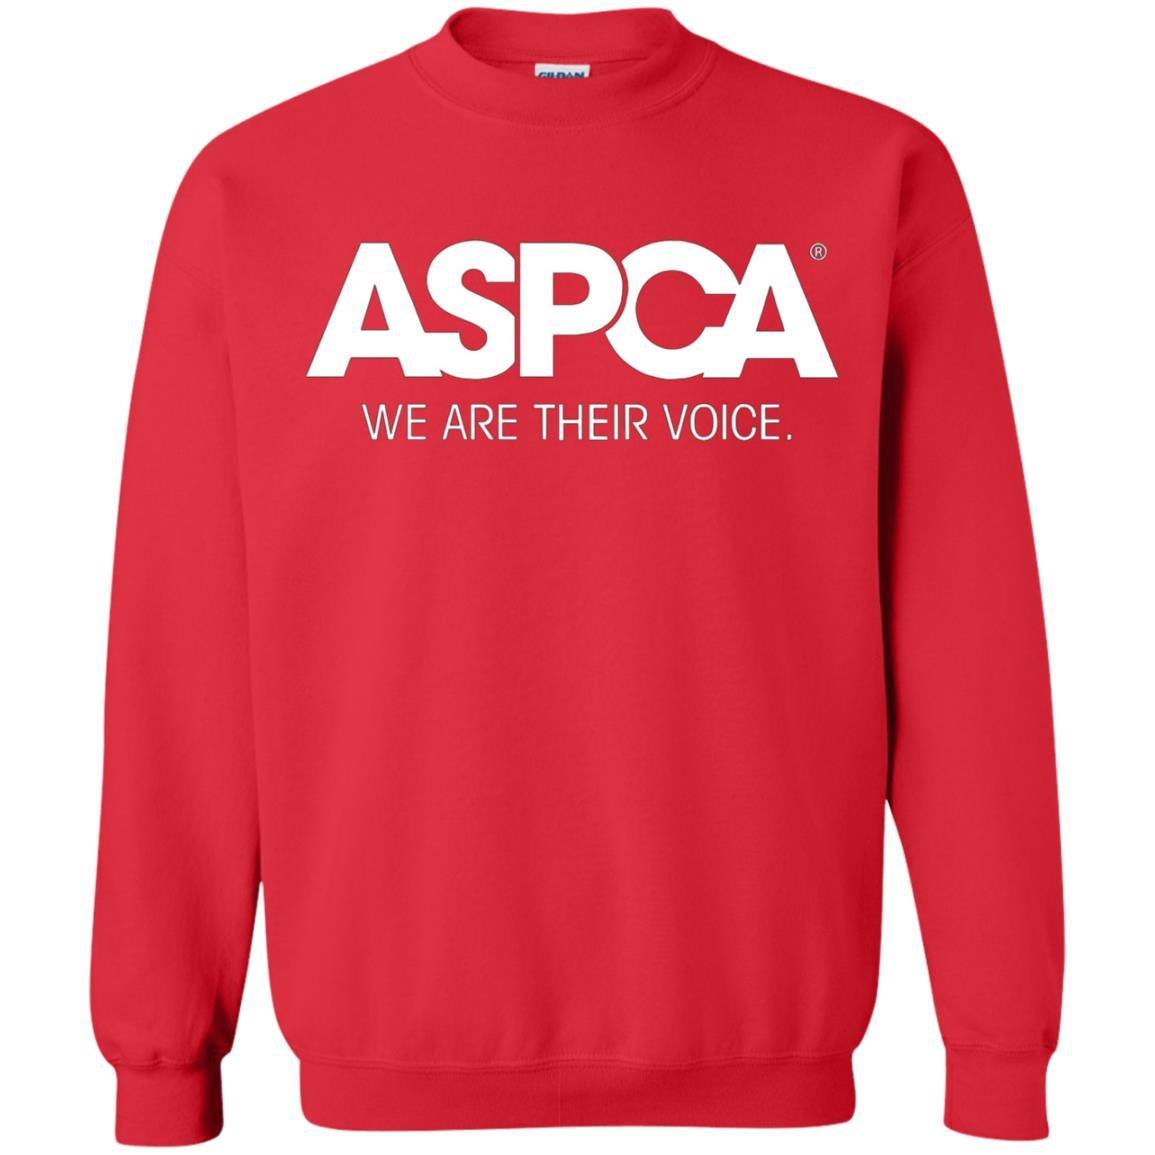 ASPCA Apparel - Crewneck Pullover Sweatshirt Red / 5XL